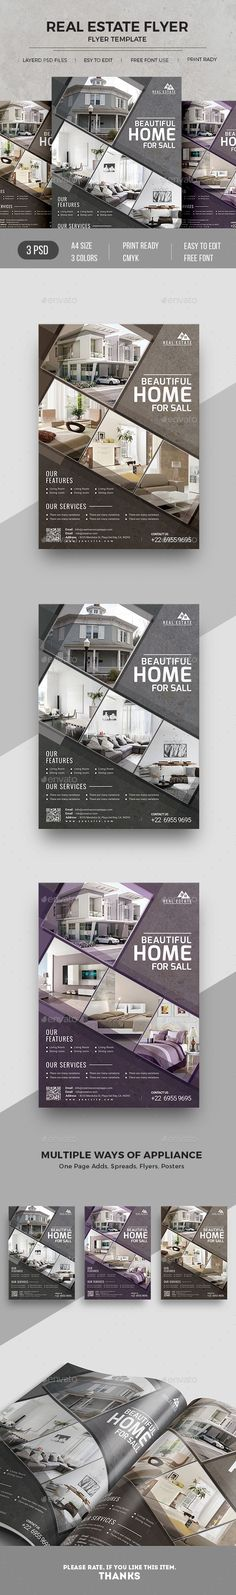 Real Estate Promotion Flyer. 3 Different color version for matching your branding color.